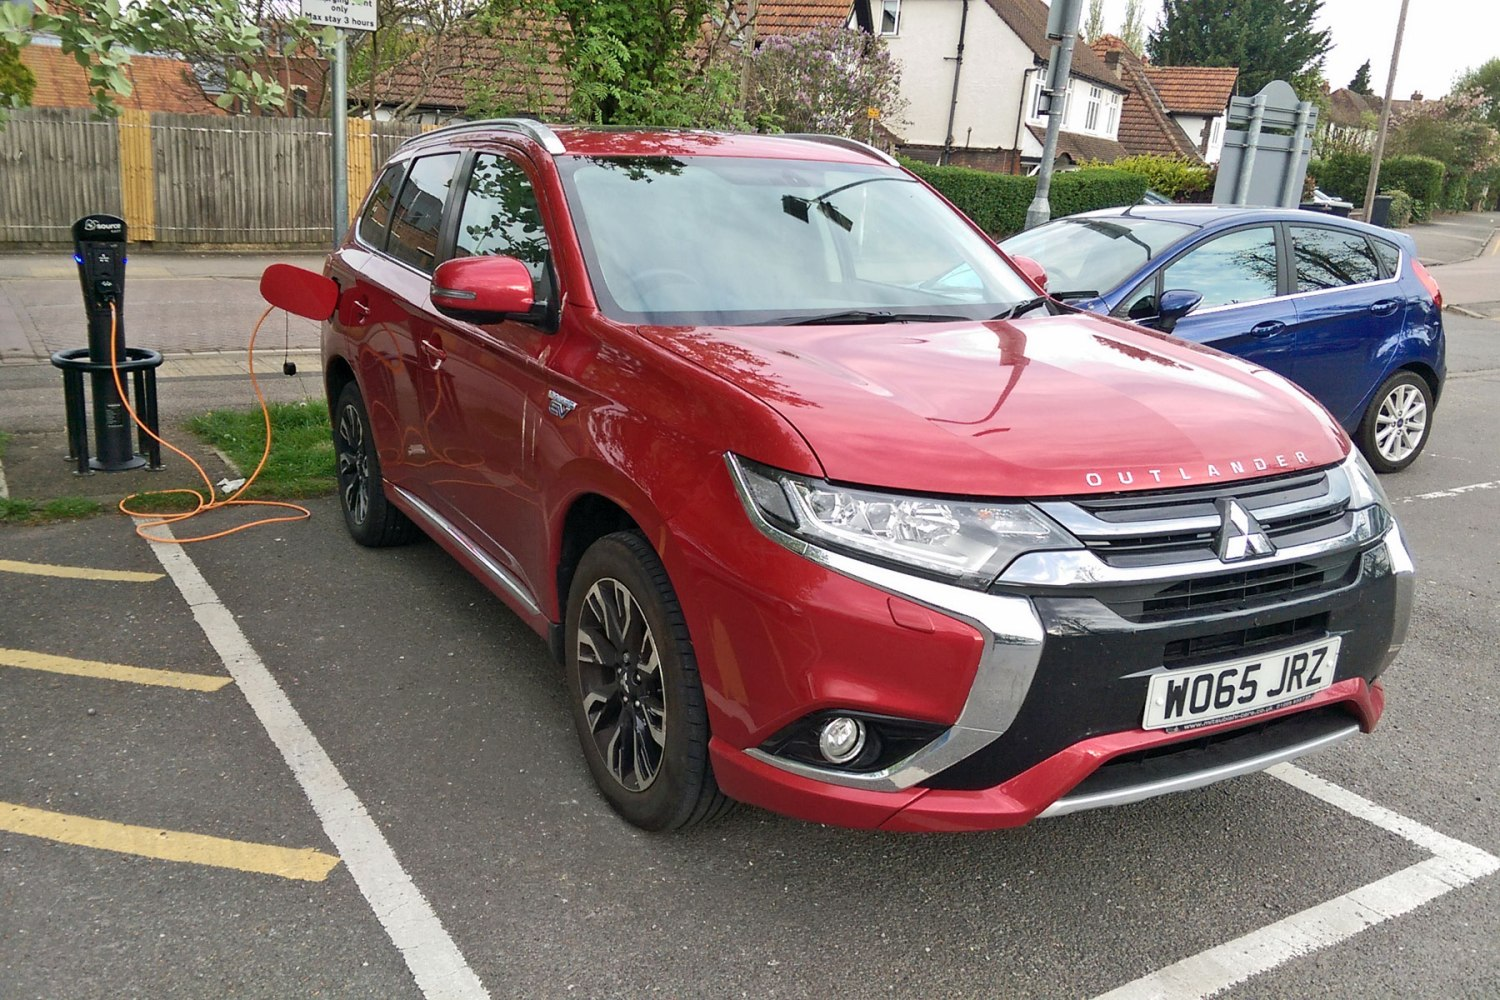 Mitsubishi Outlander (2016) long-term review